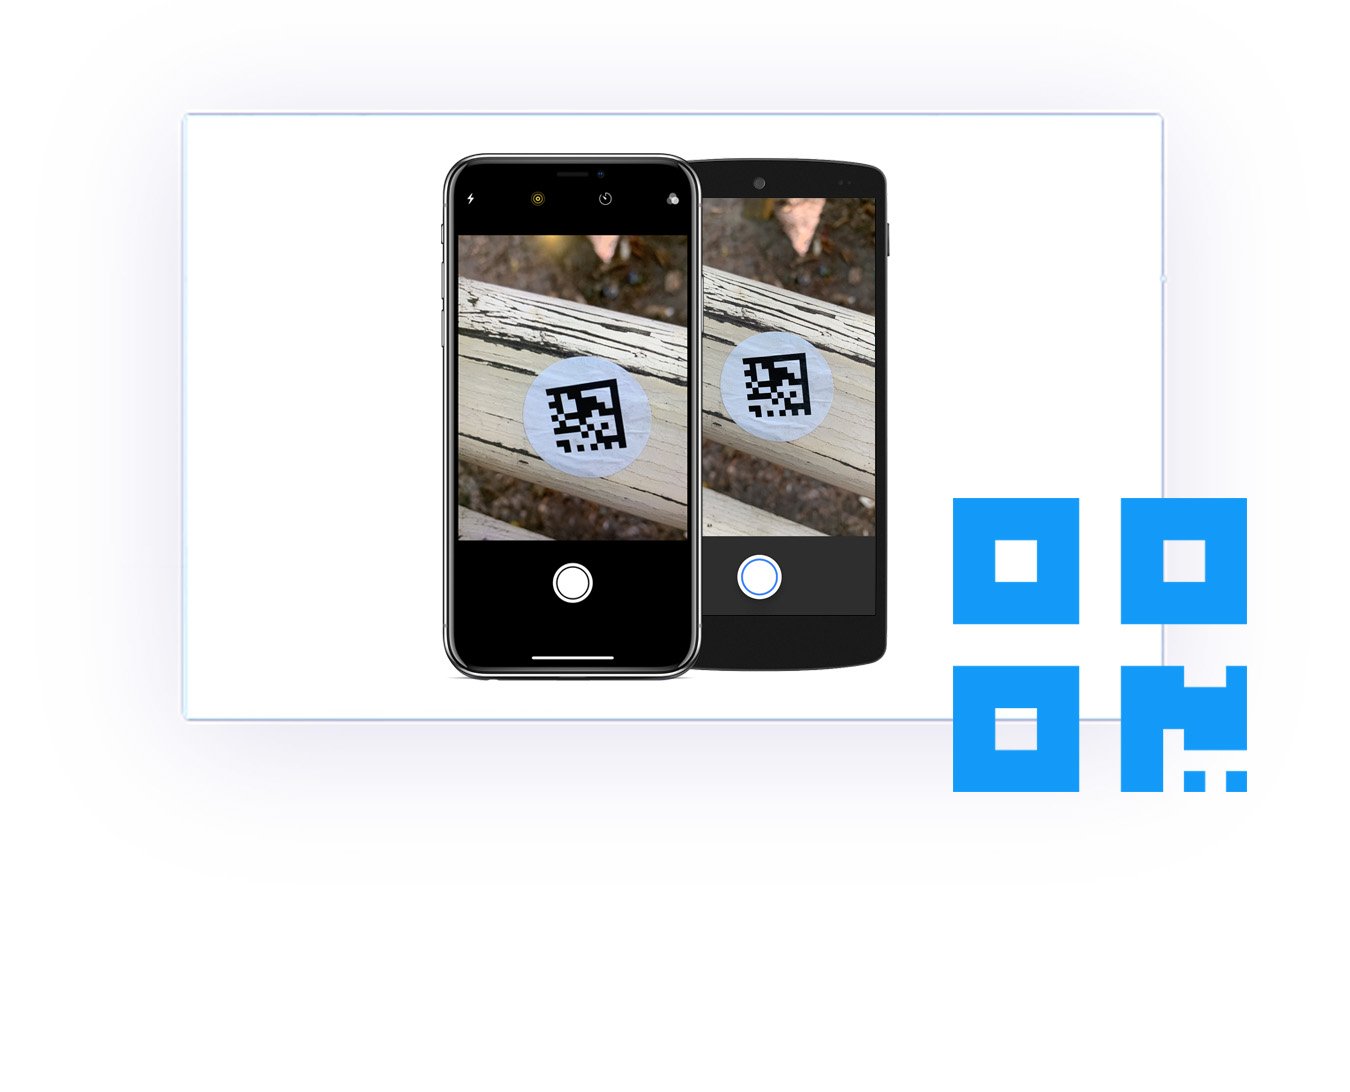 Scan QR codes in your WebView app easily